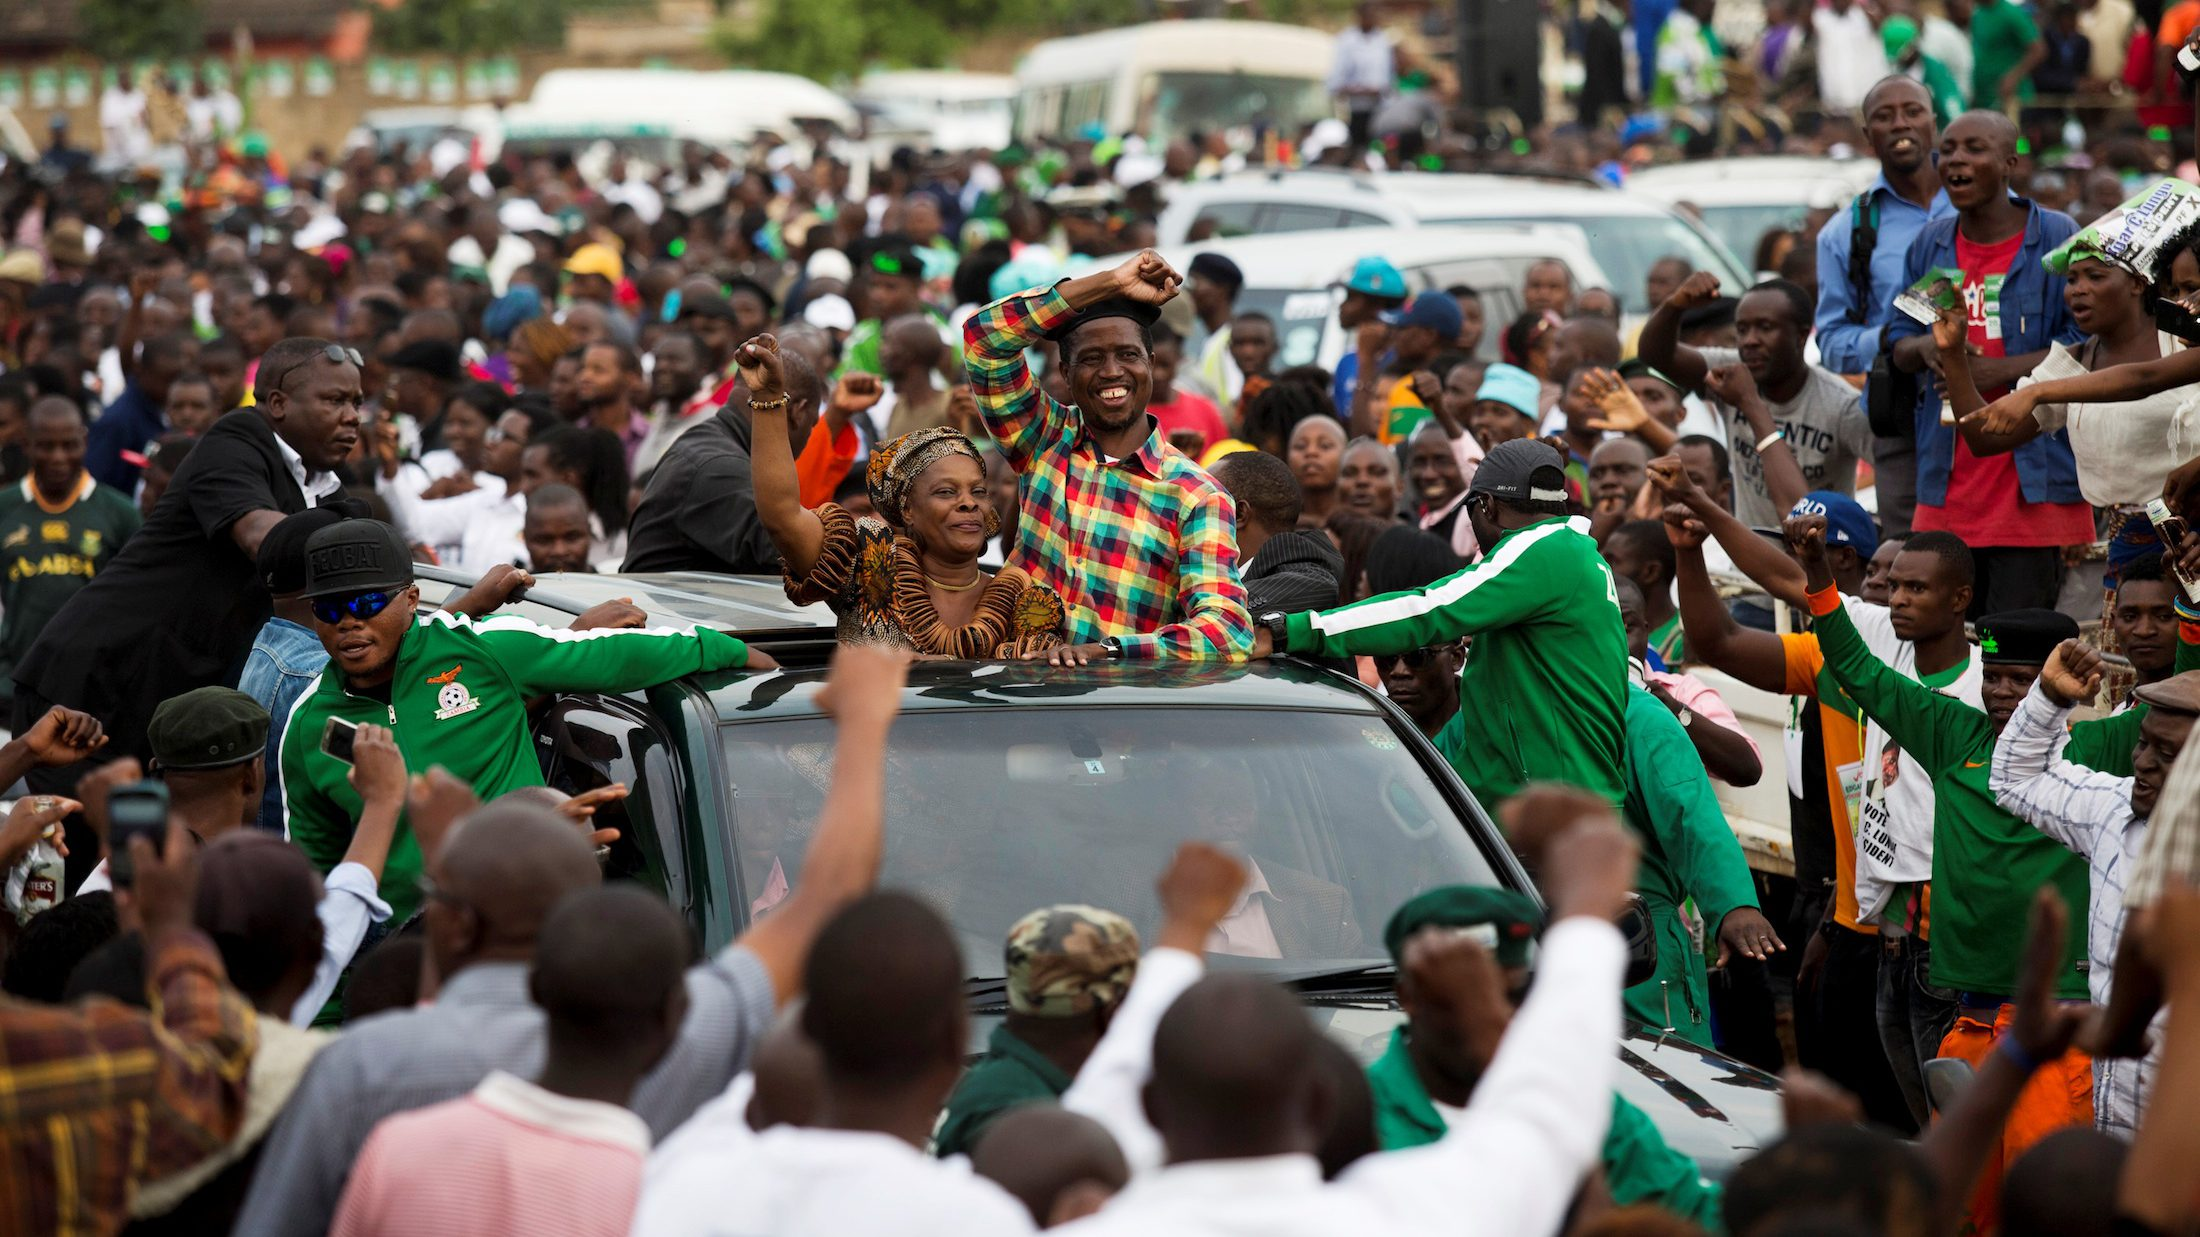 Zambia's incumbent president Edgar Lungu and his wife Esther leave a rally.